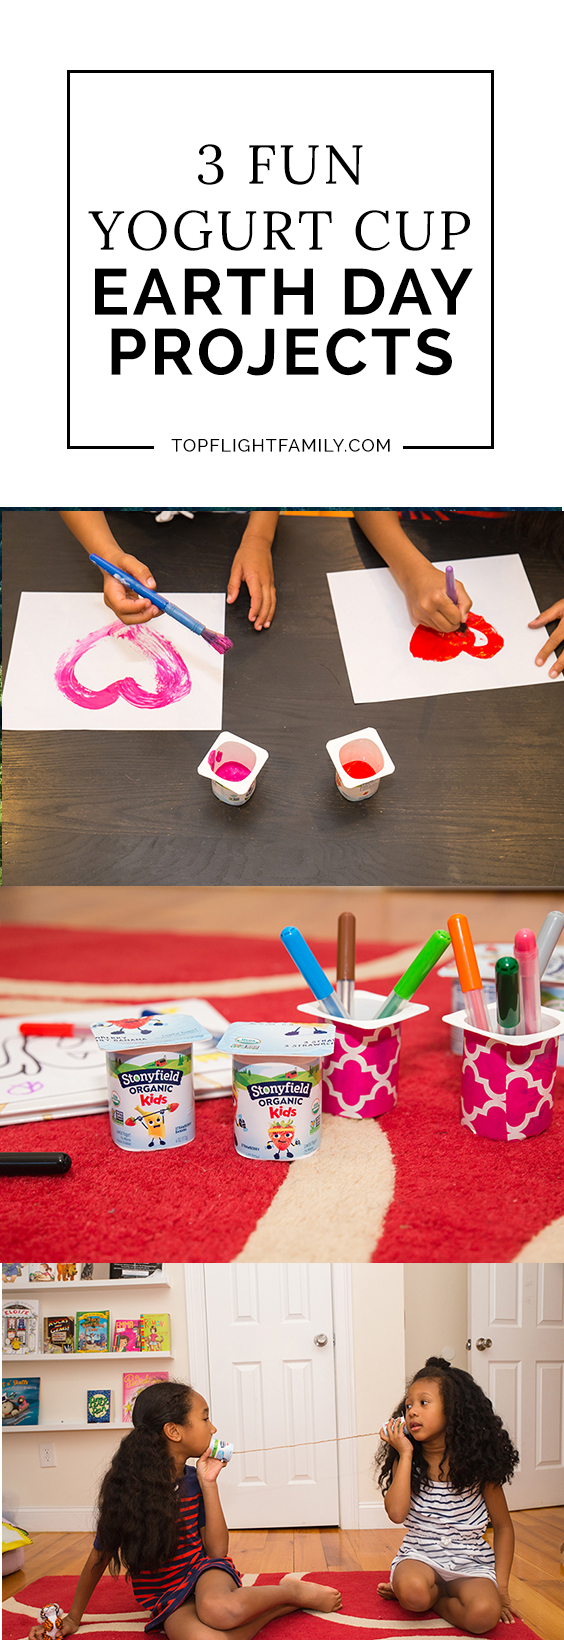 Looking for some fun and easy Earth Day projects to do with yogurt containers? Here are 3 ways to re-use them for Earth Day projects.